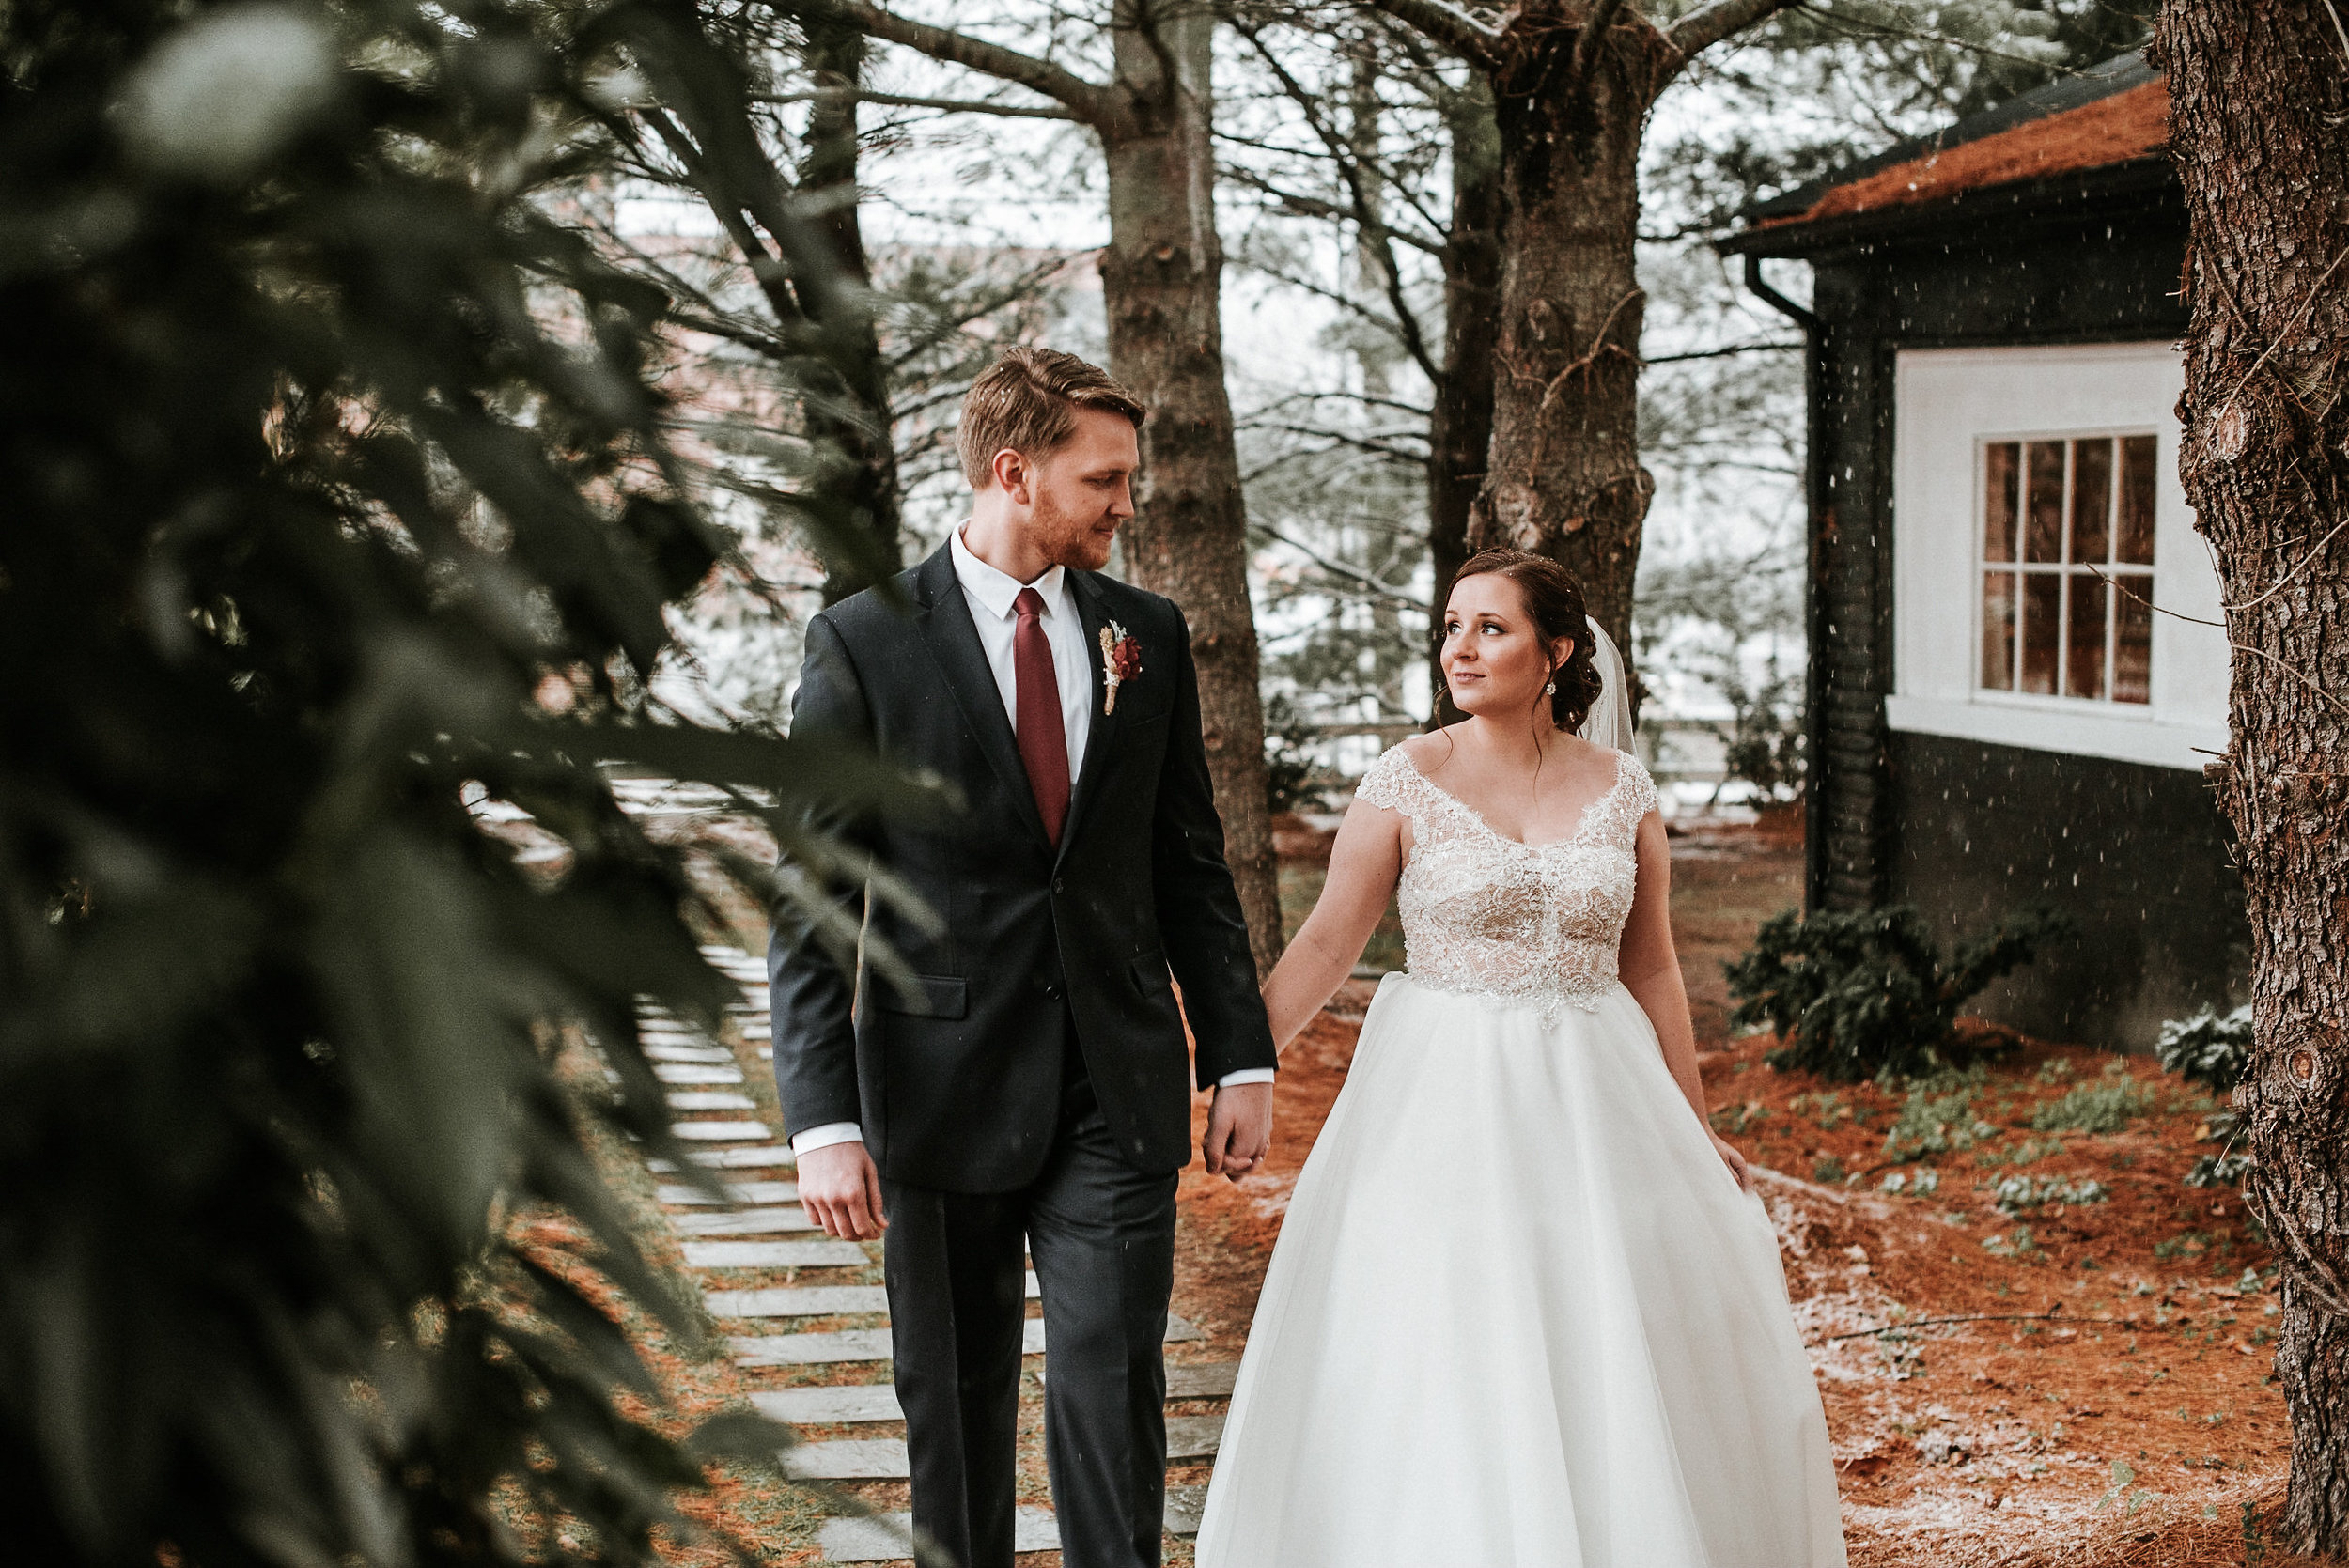 Bride and groom walking on winter path